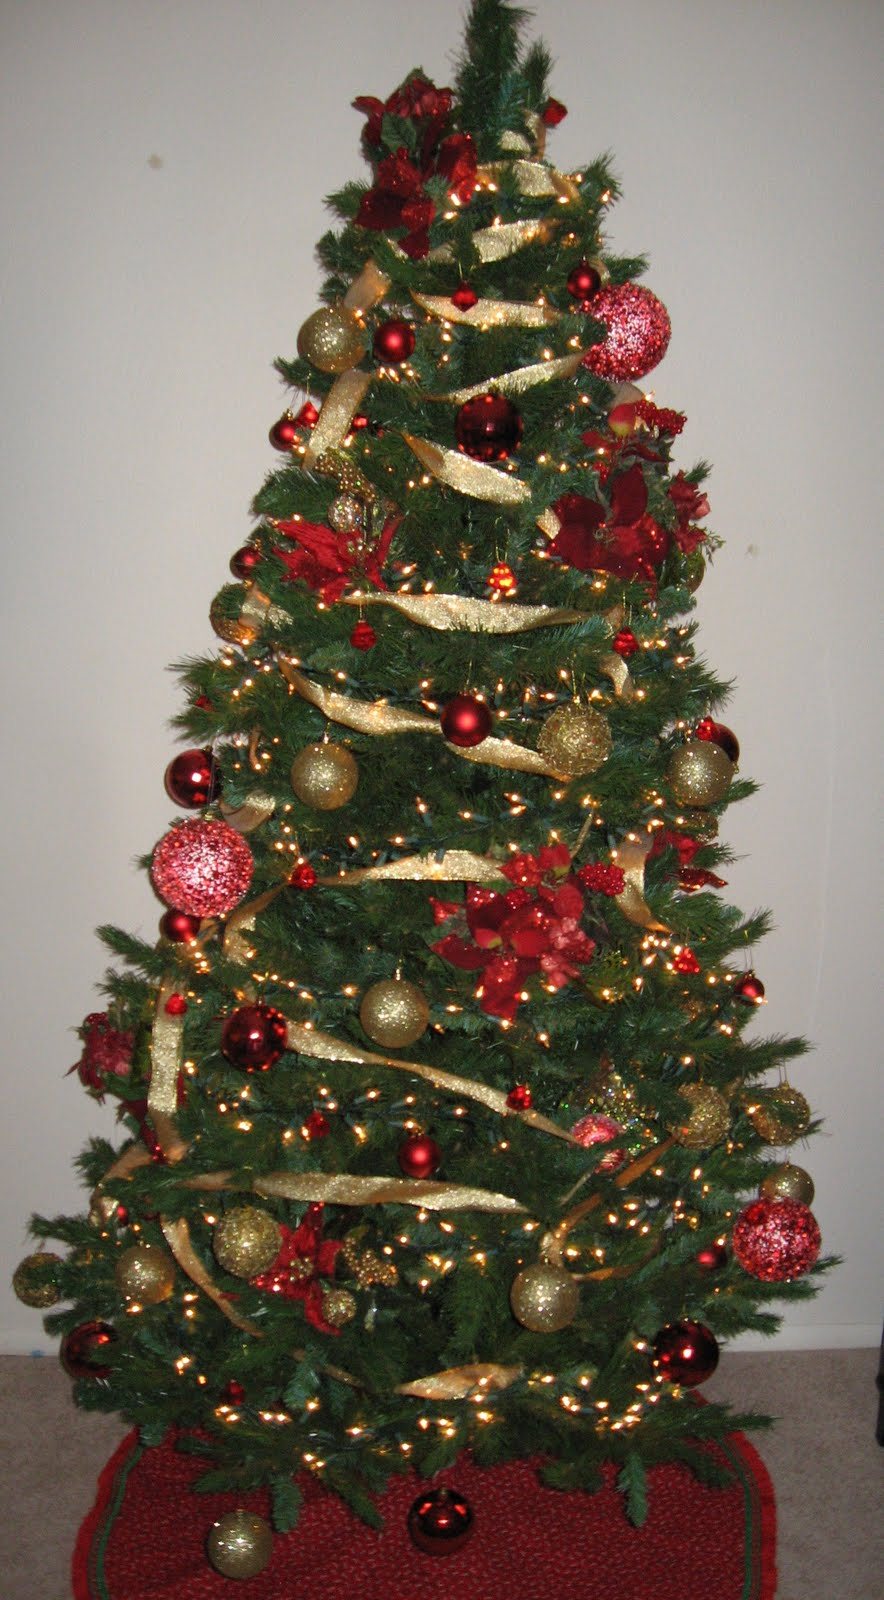 Professional Christmas Tree Decorating Ideas images